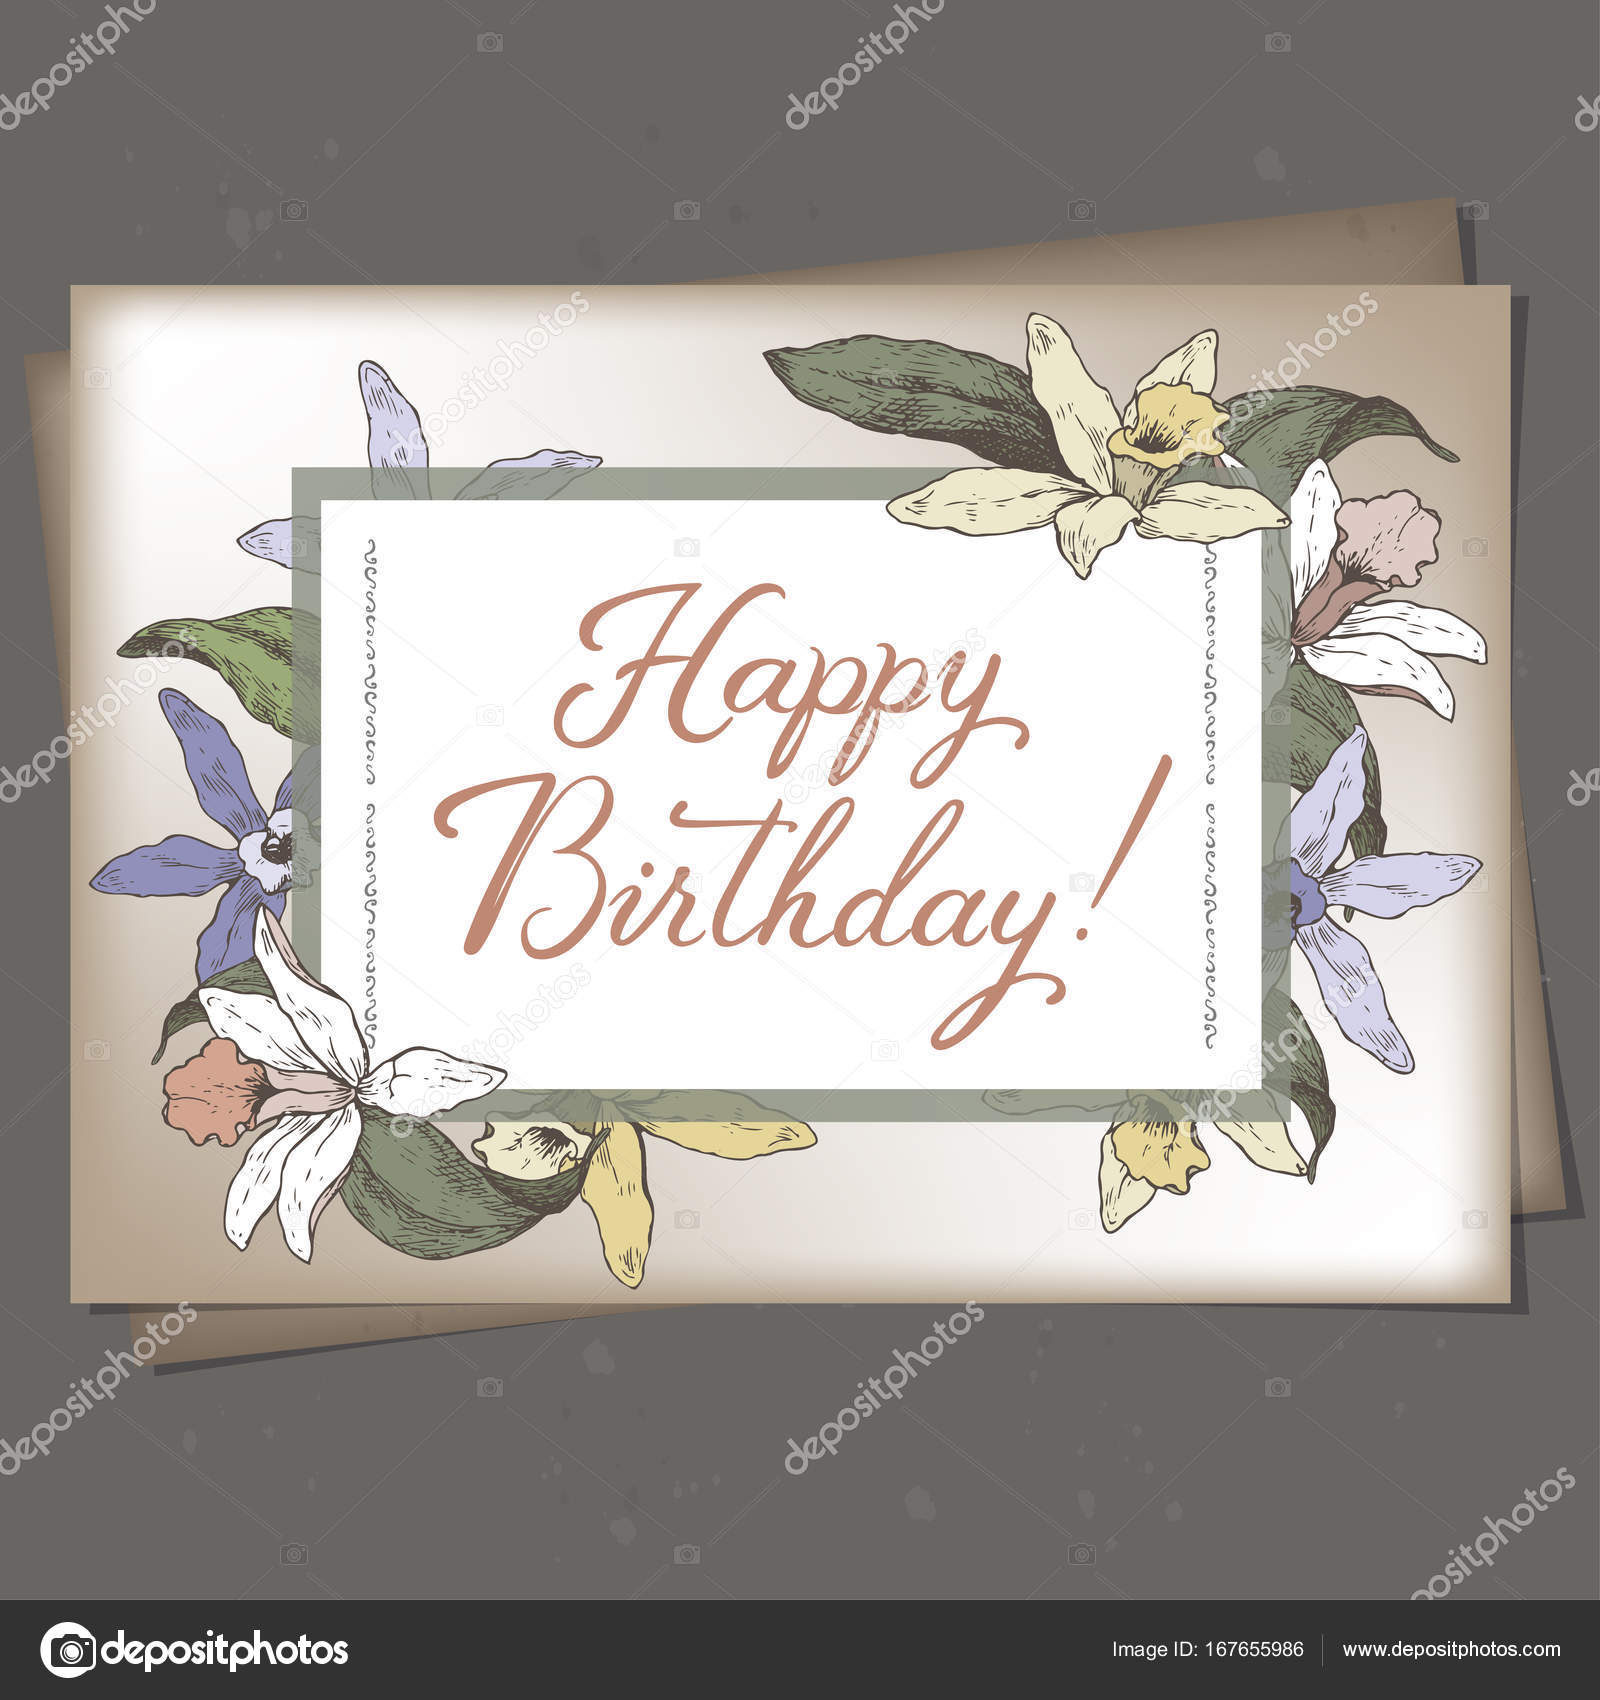 Landscape A4 Format Romantic Birthday Card Template With Calligraphy